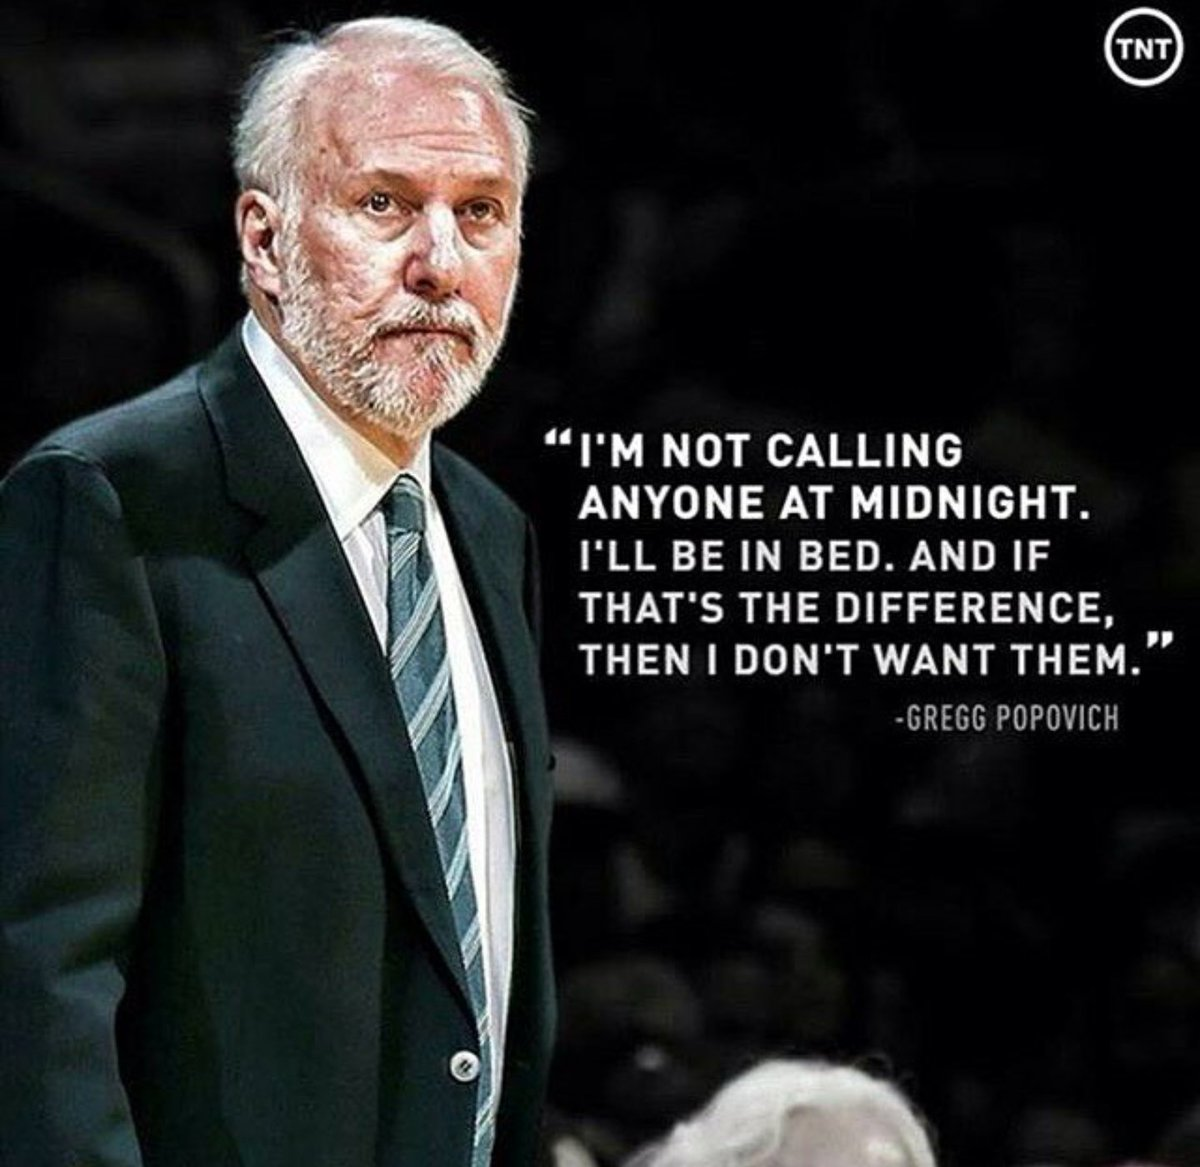 Meanwhile, Pop is